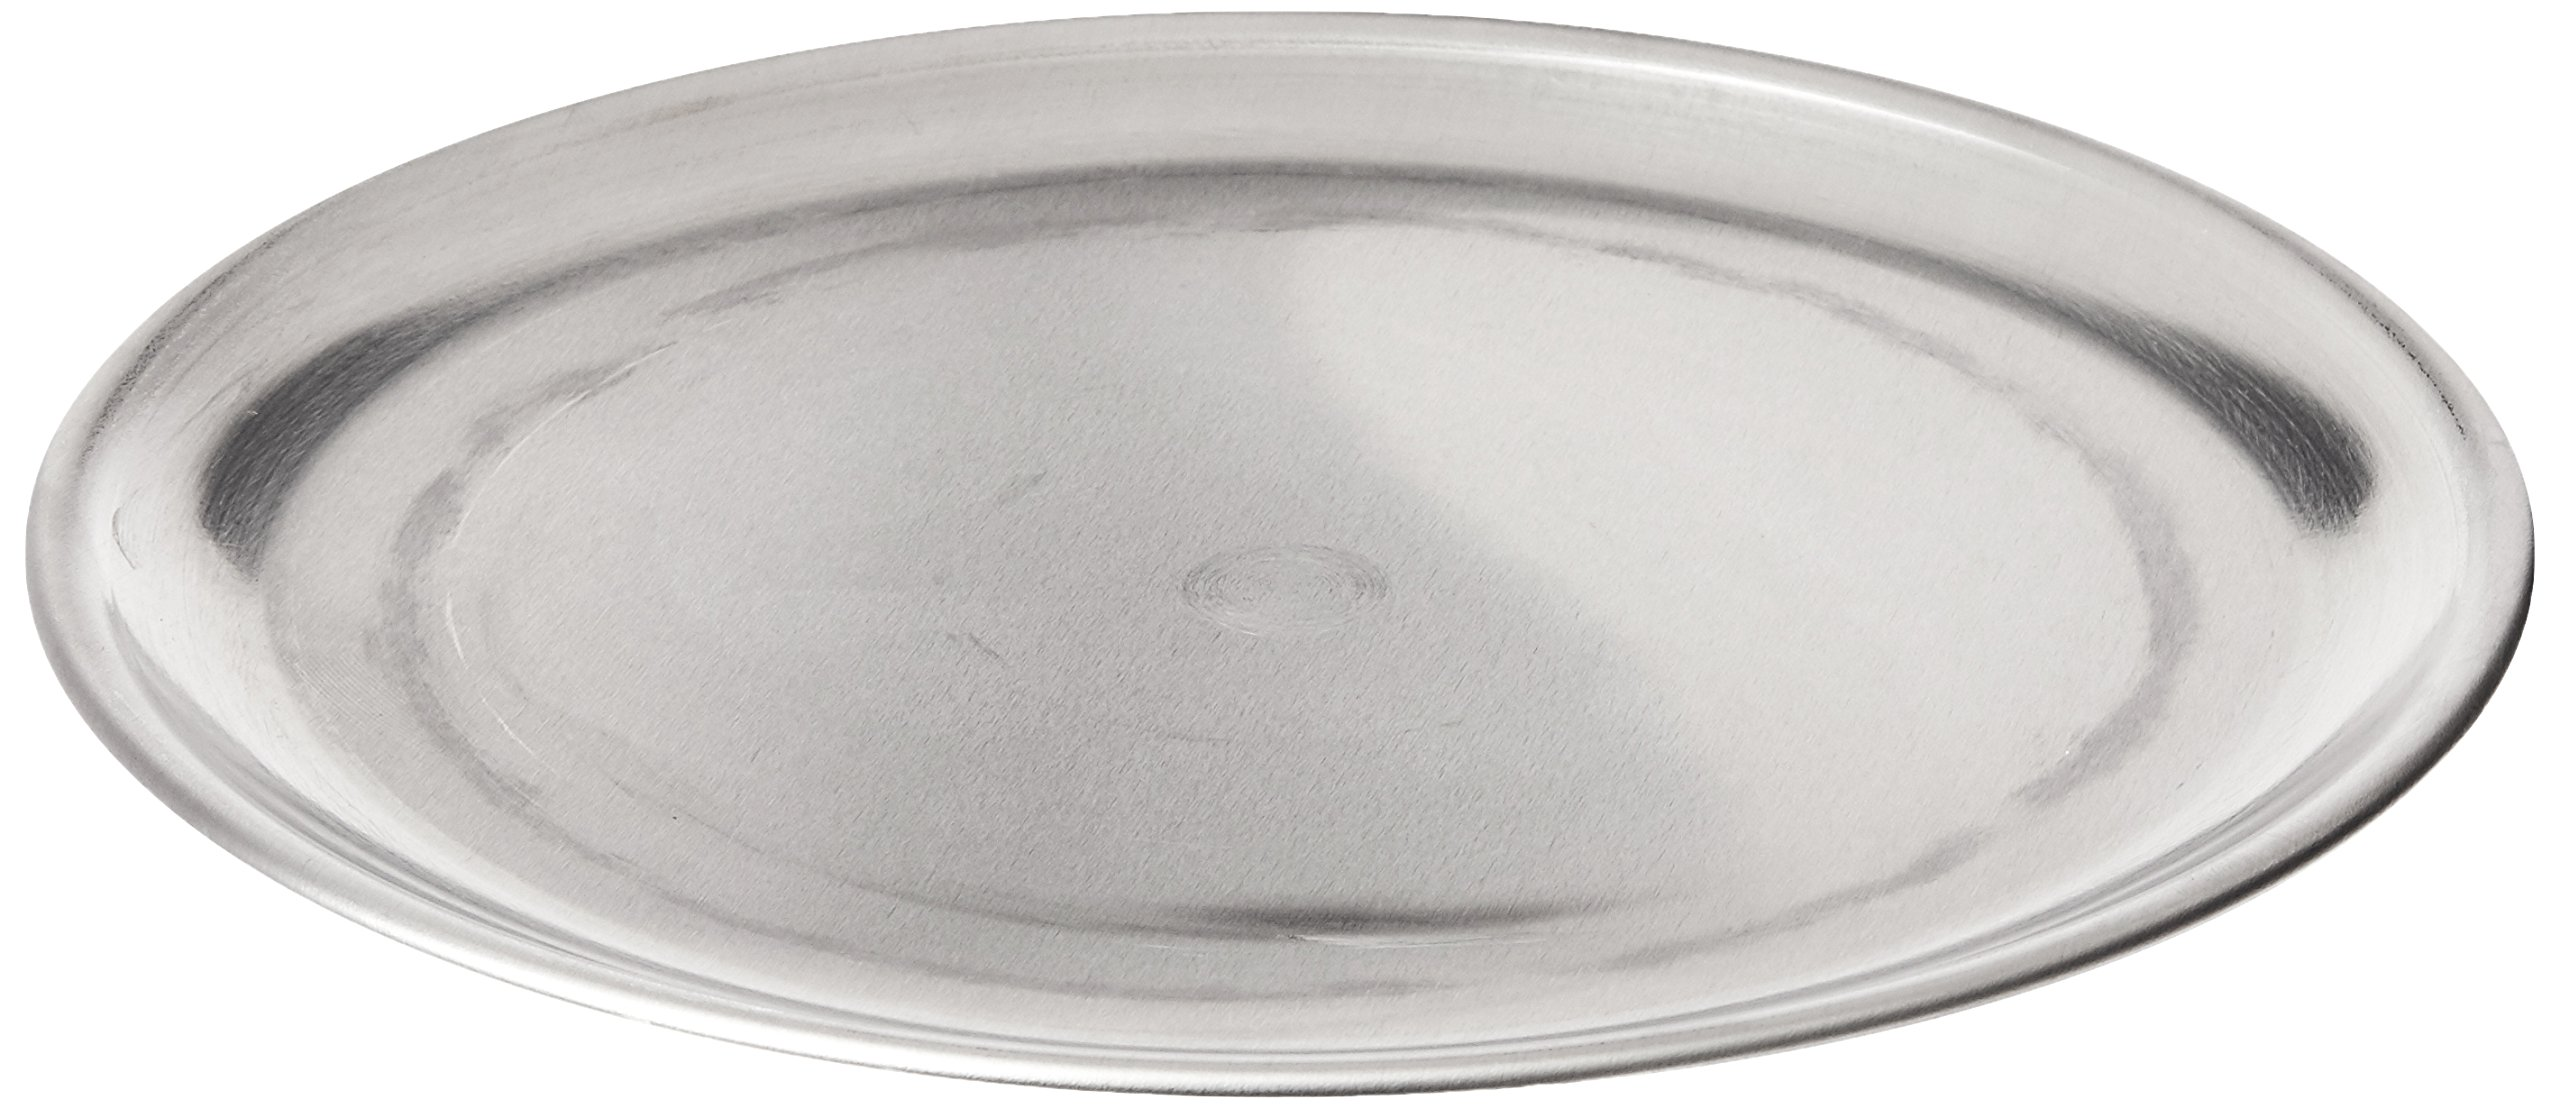 American Metalcraft CTP9 Pizza Pans, 9.2'' Length x 9.15'' Width, Silver by American Metalcraft (Image #1)